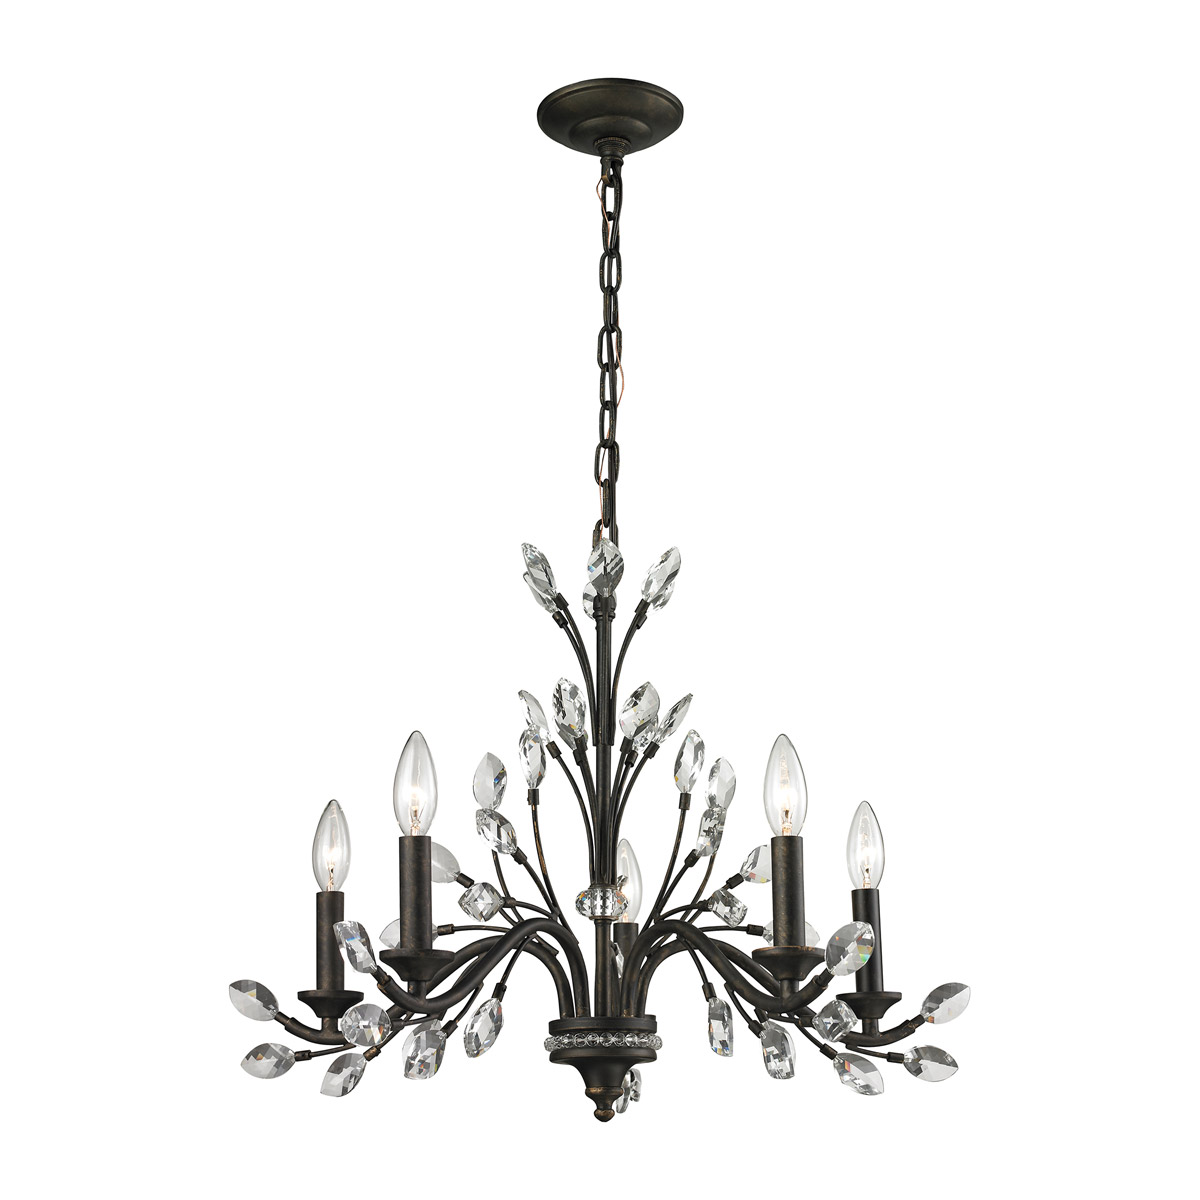 Crystal Chandelier ELK Lighting,Brooklyn,New York Furniture by ABD, Accentuations Brand